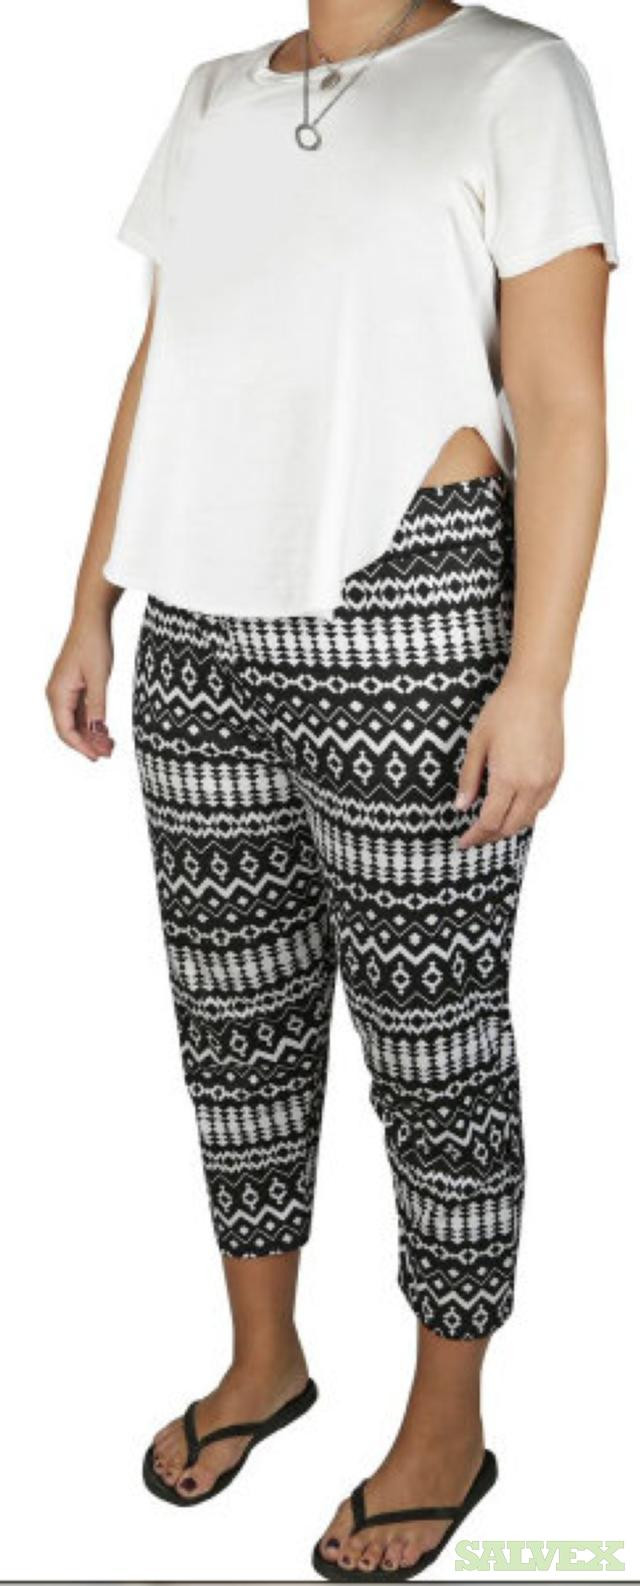 Lucy Diamond Capri Pants Plus Size